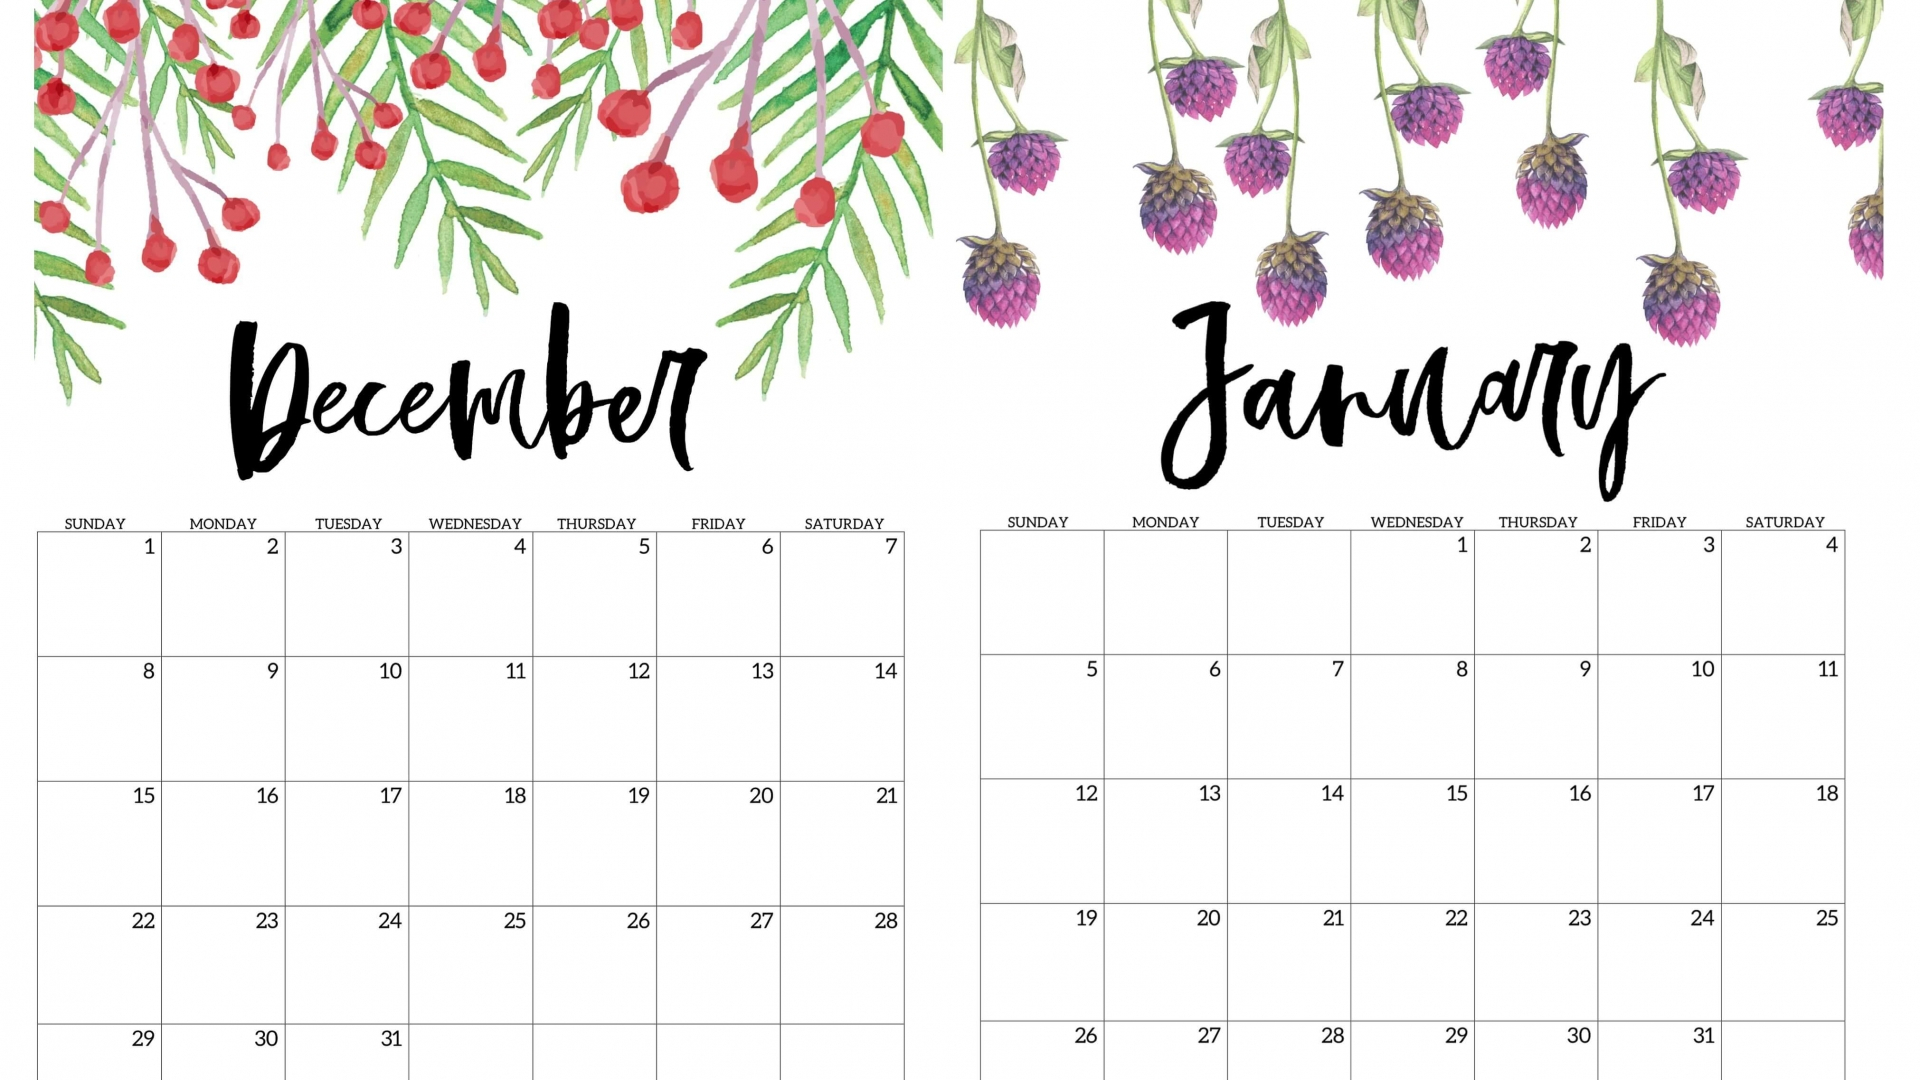 Free Download January 2020 Calendar Wallpapers Top January